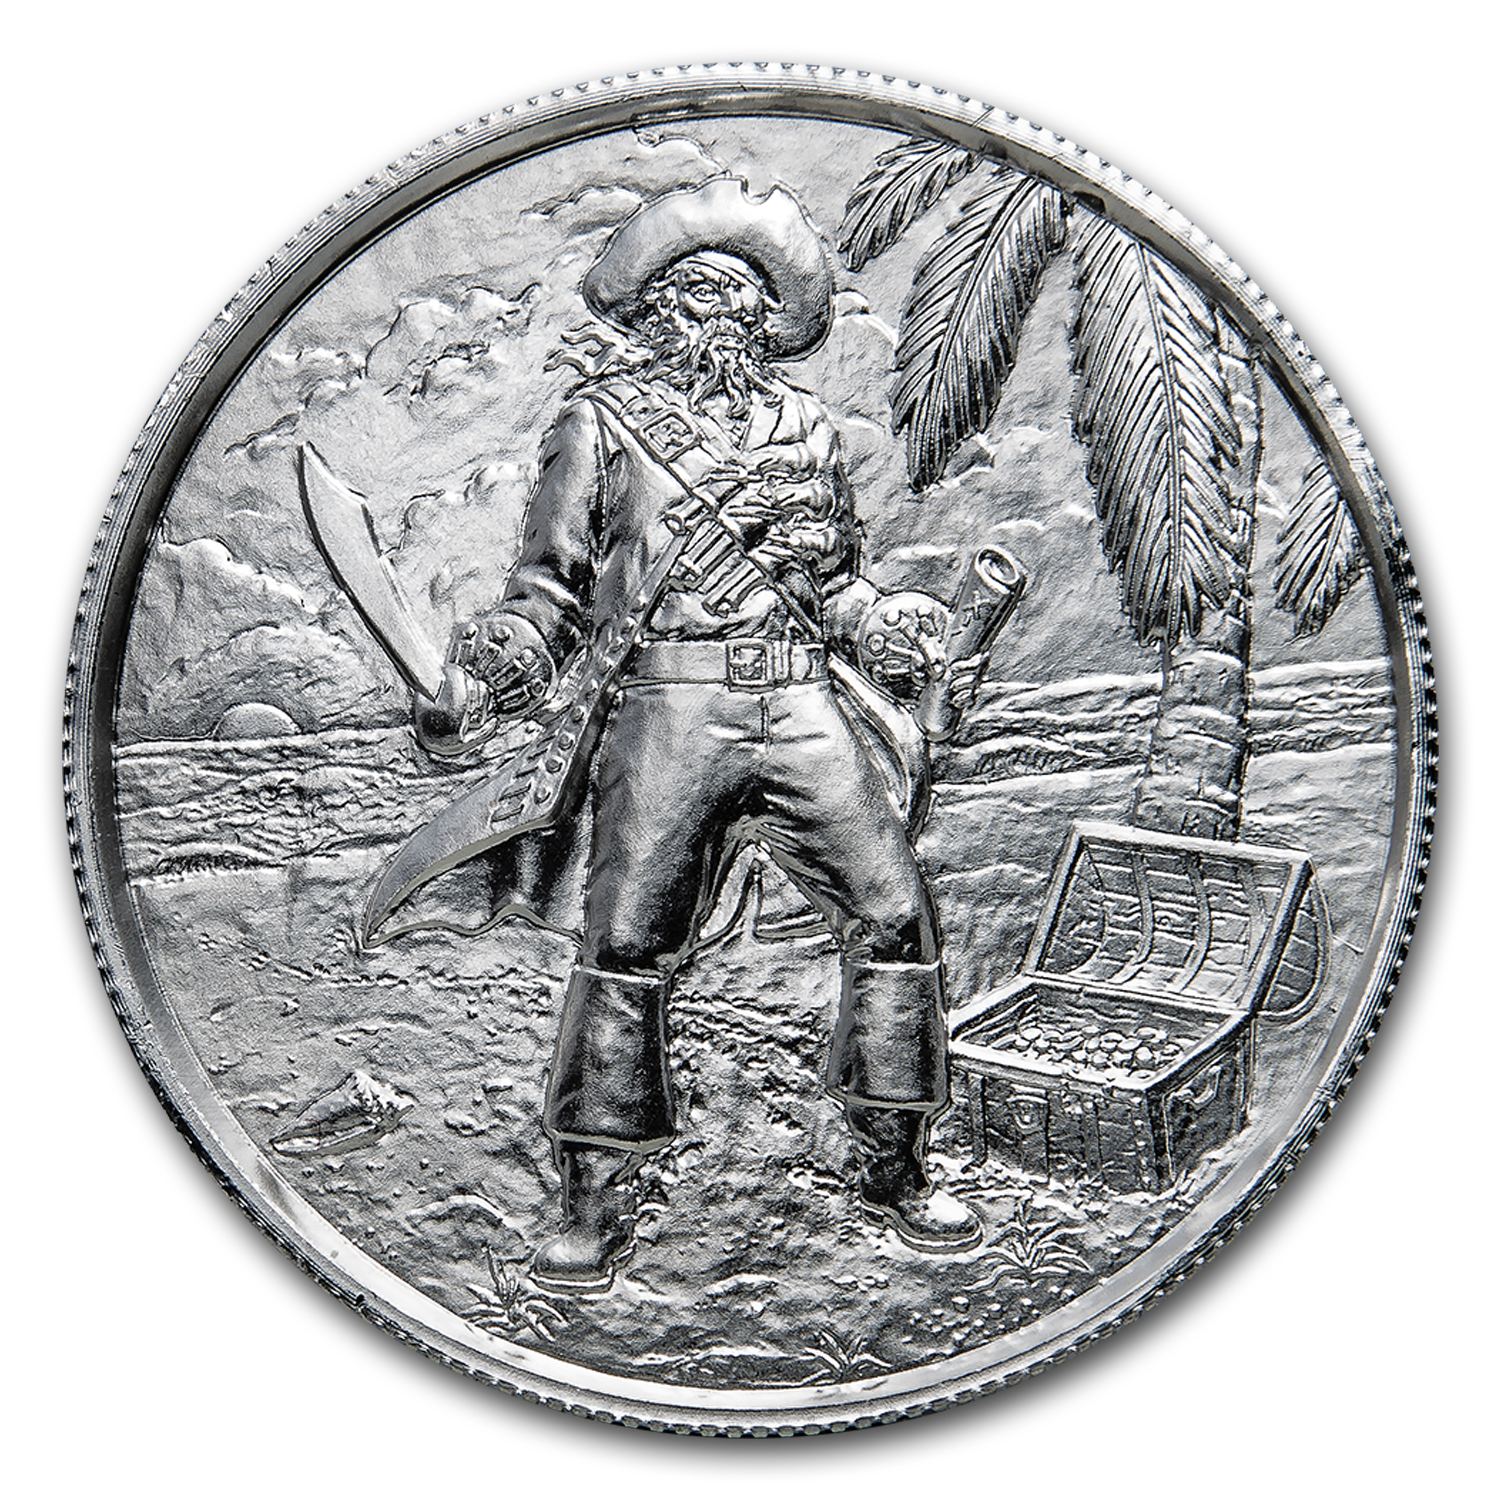 2 oz Silver Round - UHR Privateer Series (The Captain)